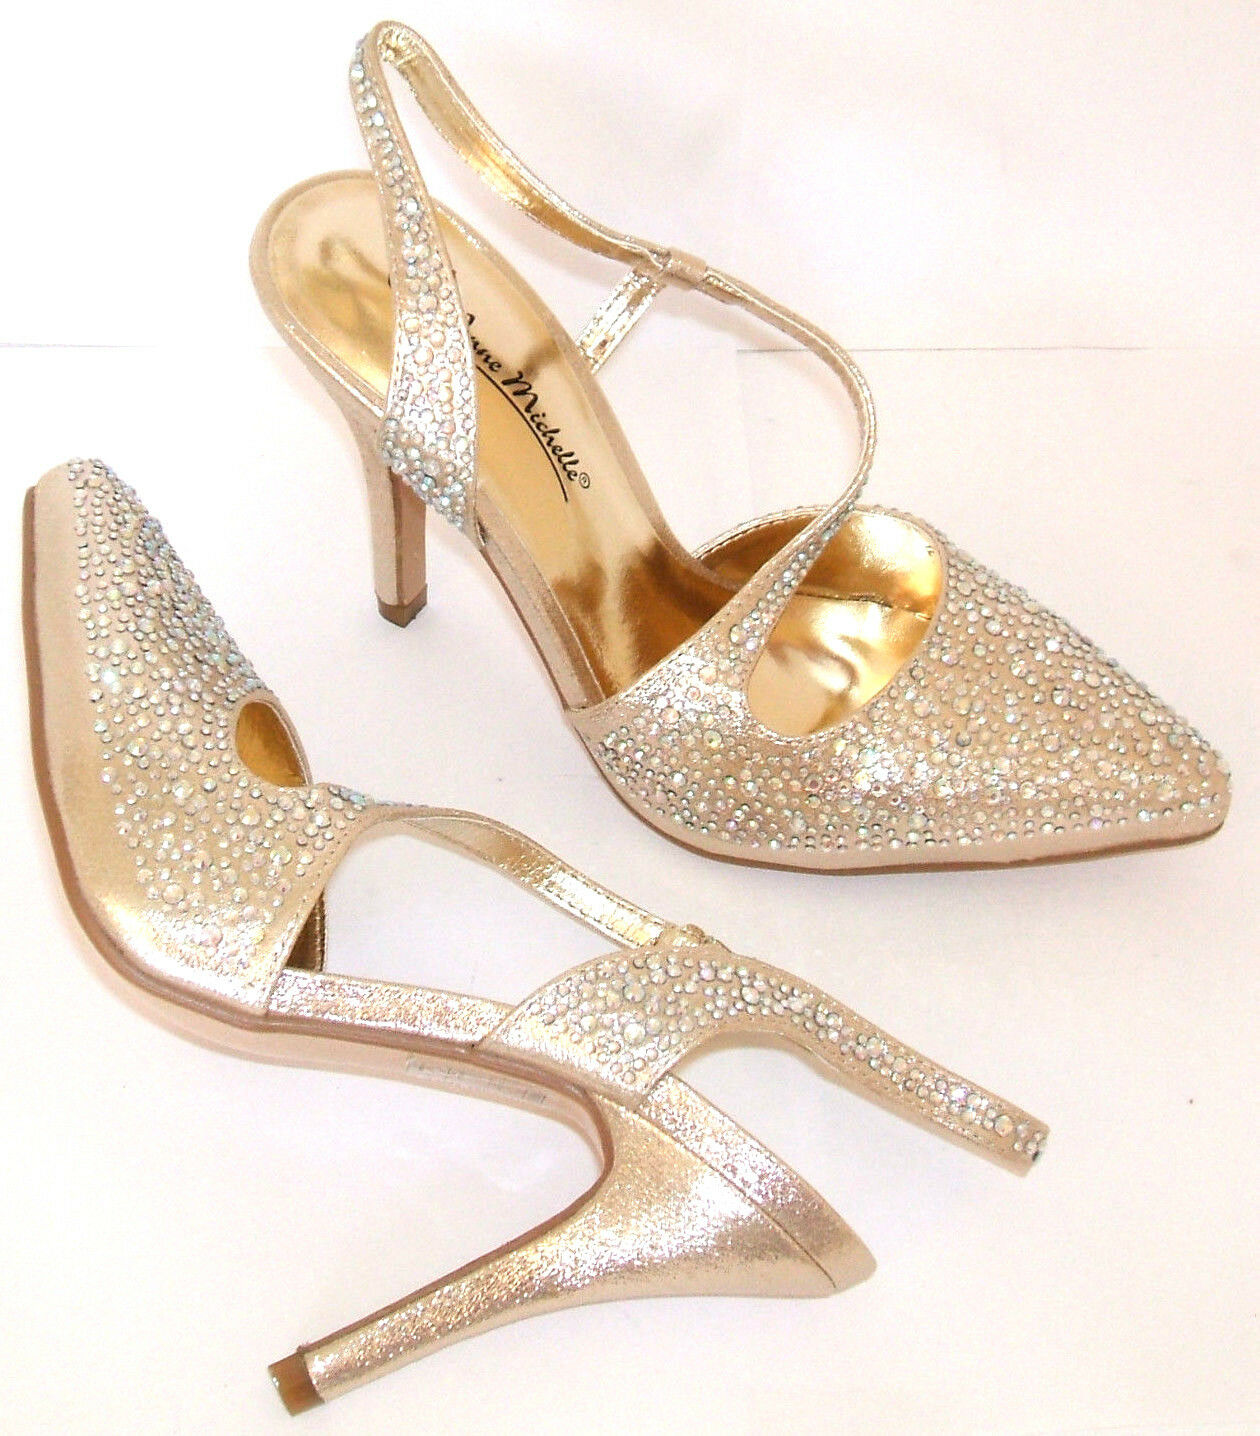 ANNE MICHELLE SIZE 2 3 4 5 6 7 gold DIAMANTE PROM BRIDAL SLINGBACK COURT SHOES